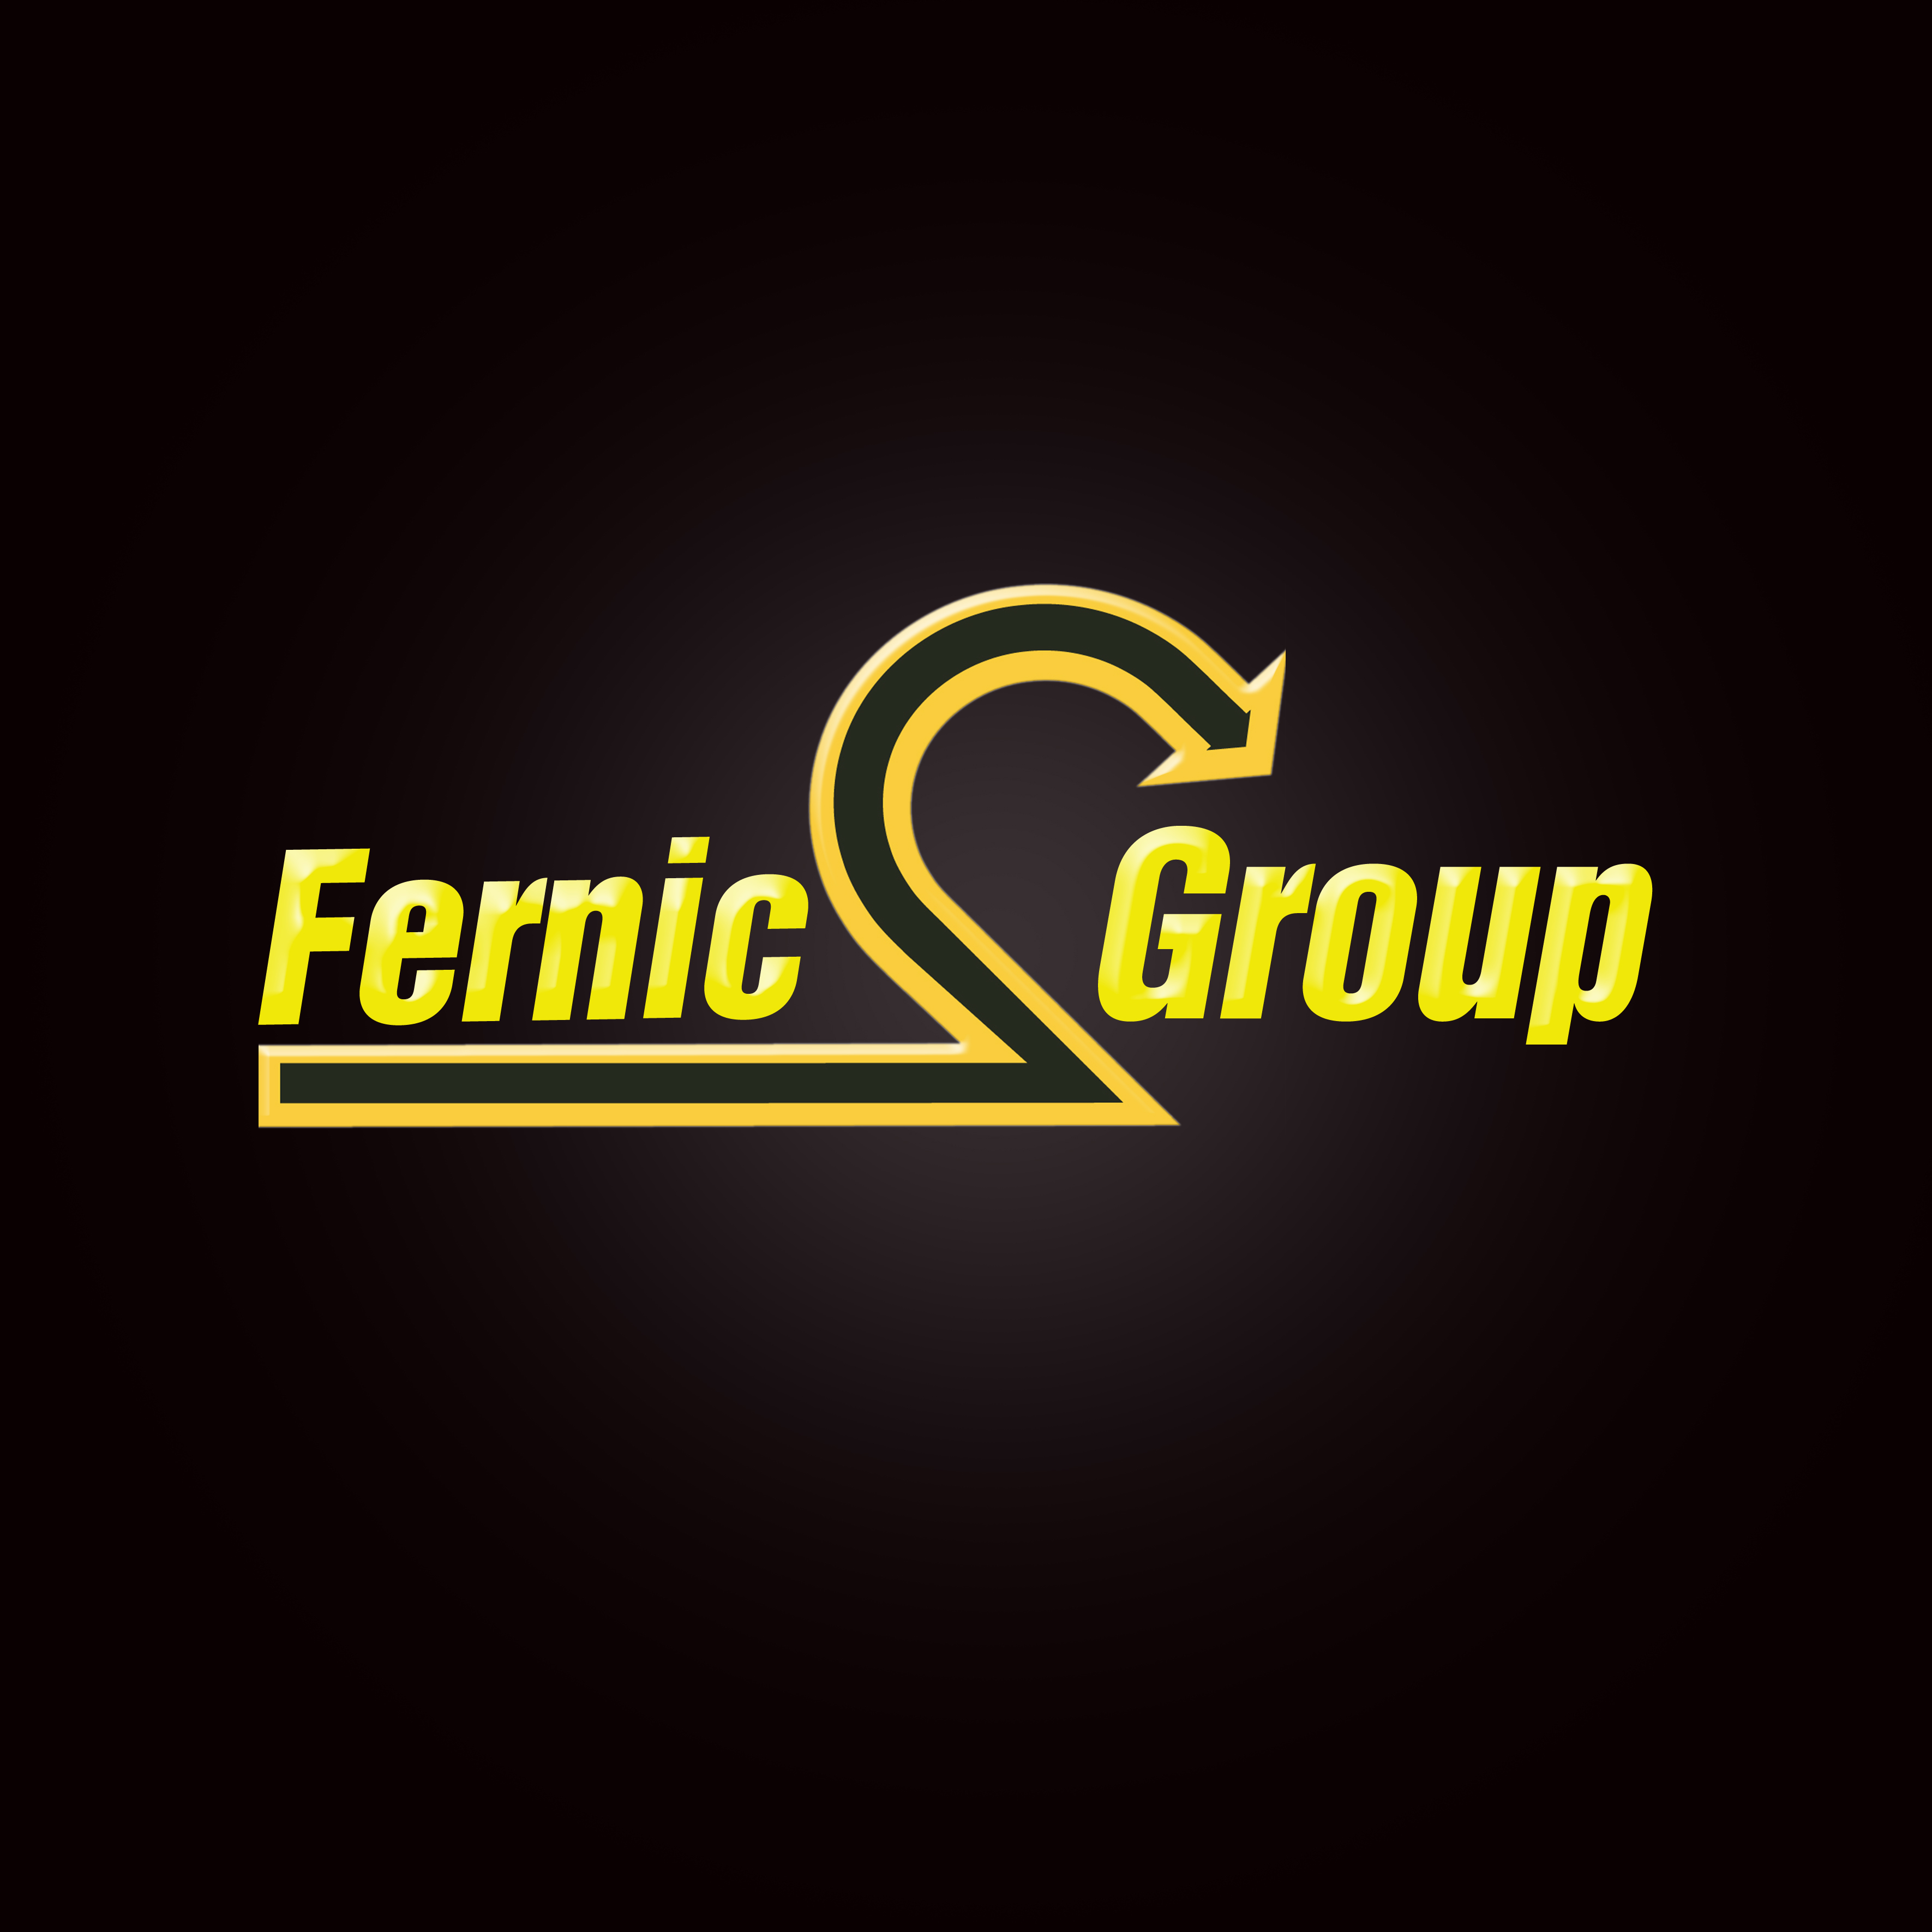 Logo Design by Roberto Sibbaluca - Entry No. 25 in the Logo Design Contest Artistic Logo Design for Fernic Goup.